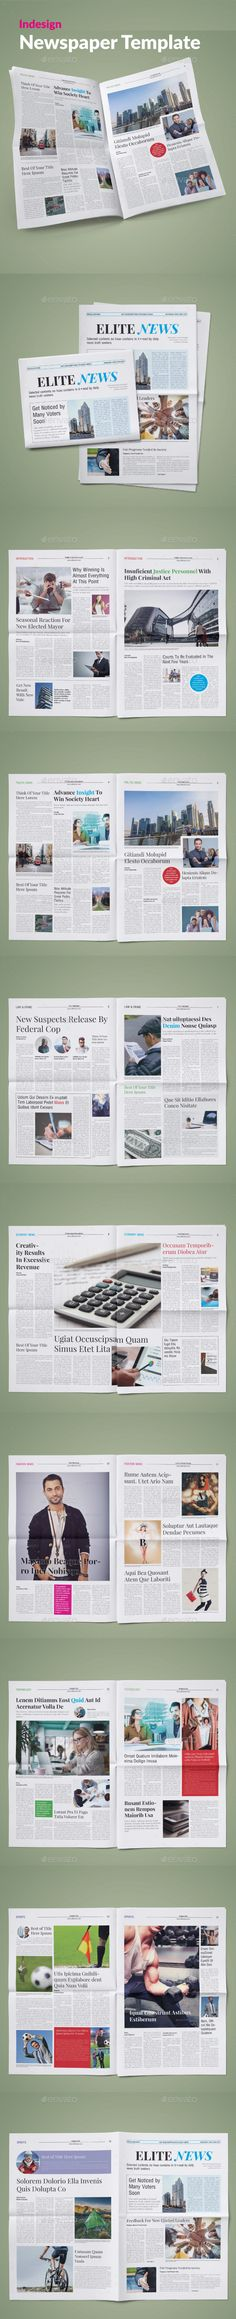 24 Pages Newspaper Newsletters Print Templates Download Here